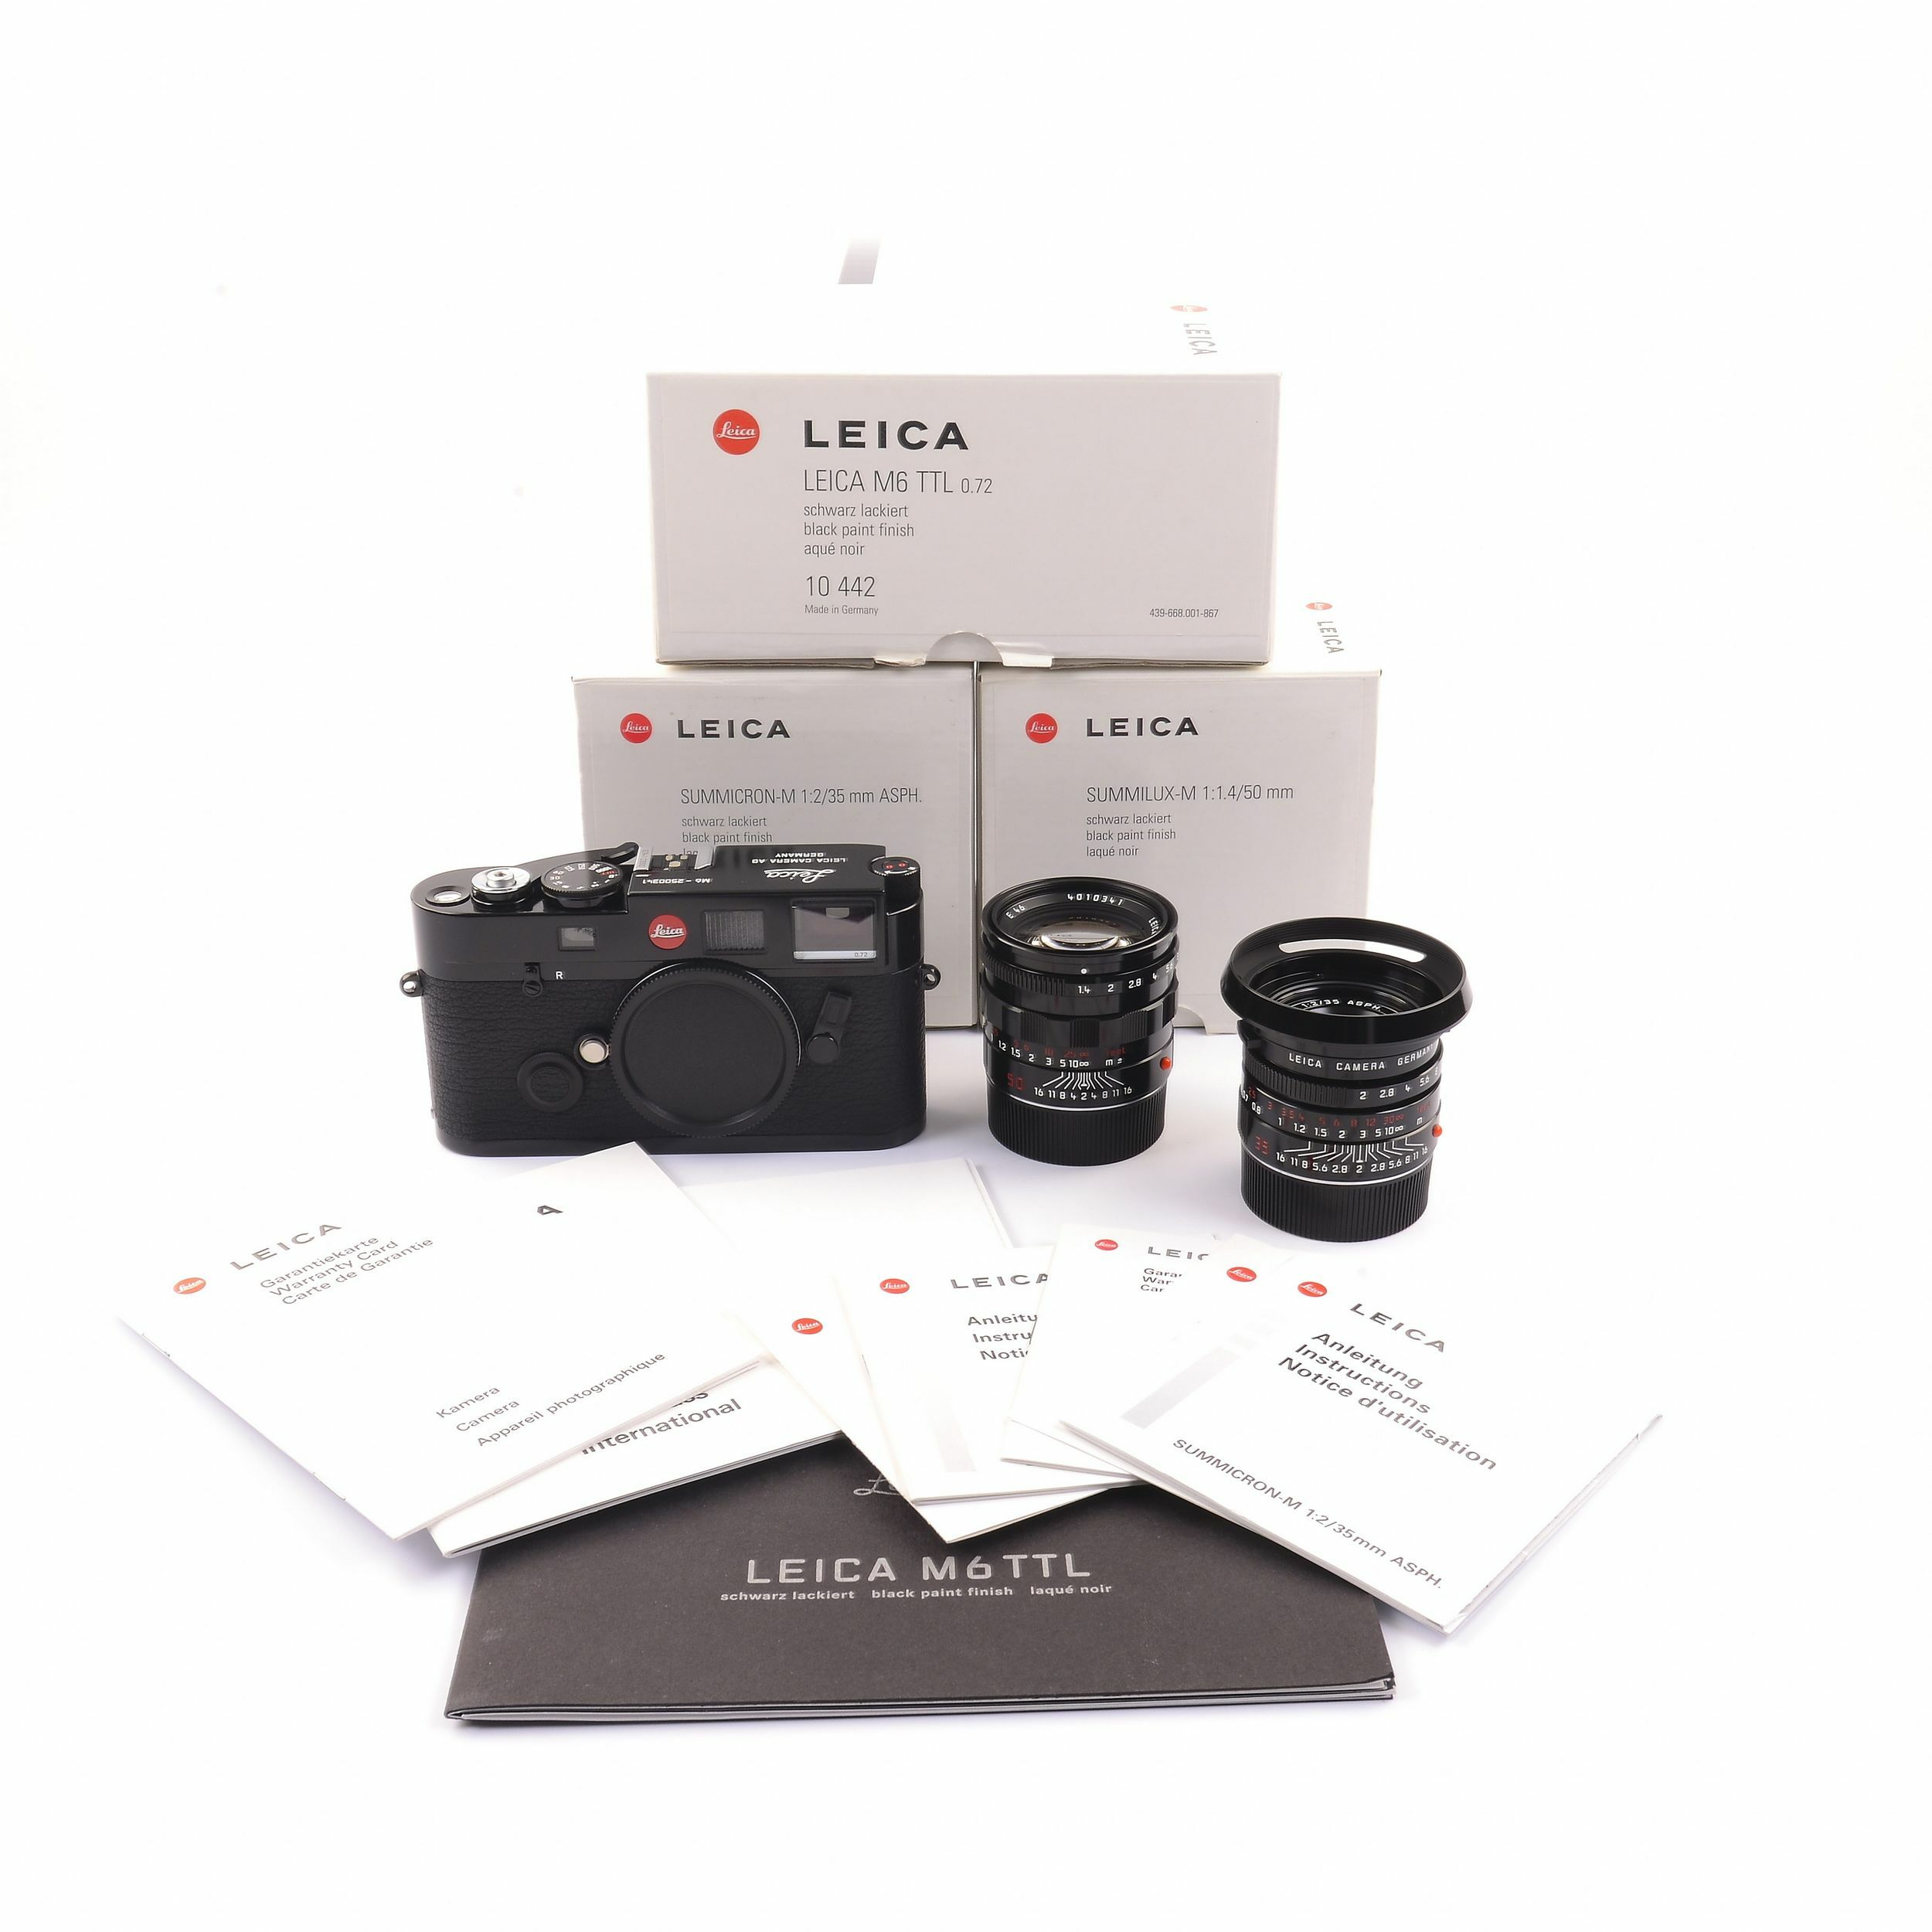 Leica M Ttl Black Paint